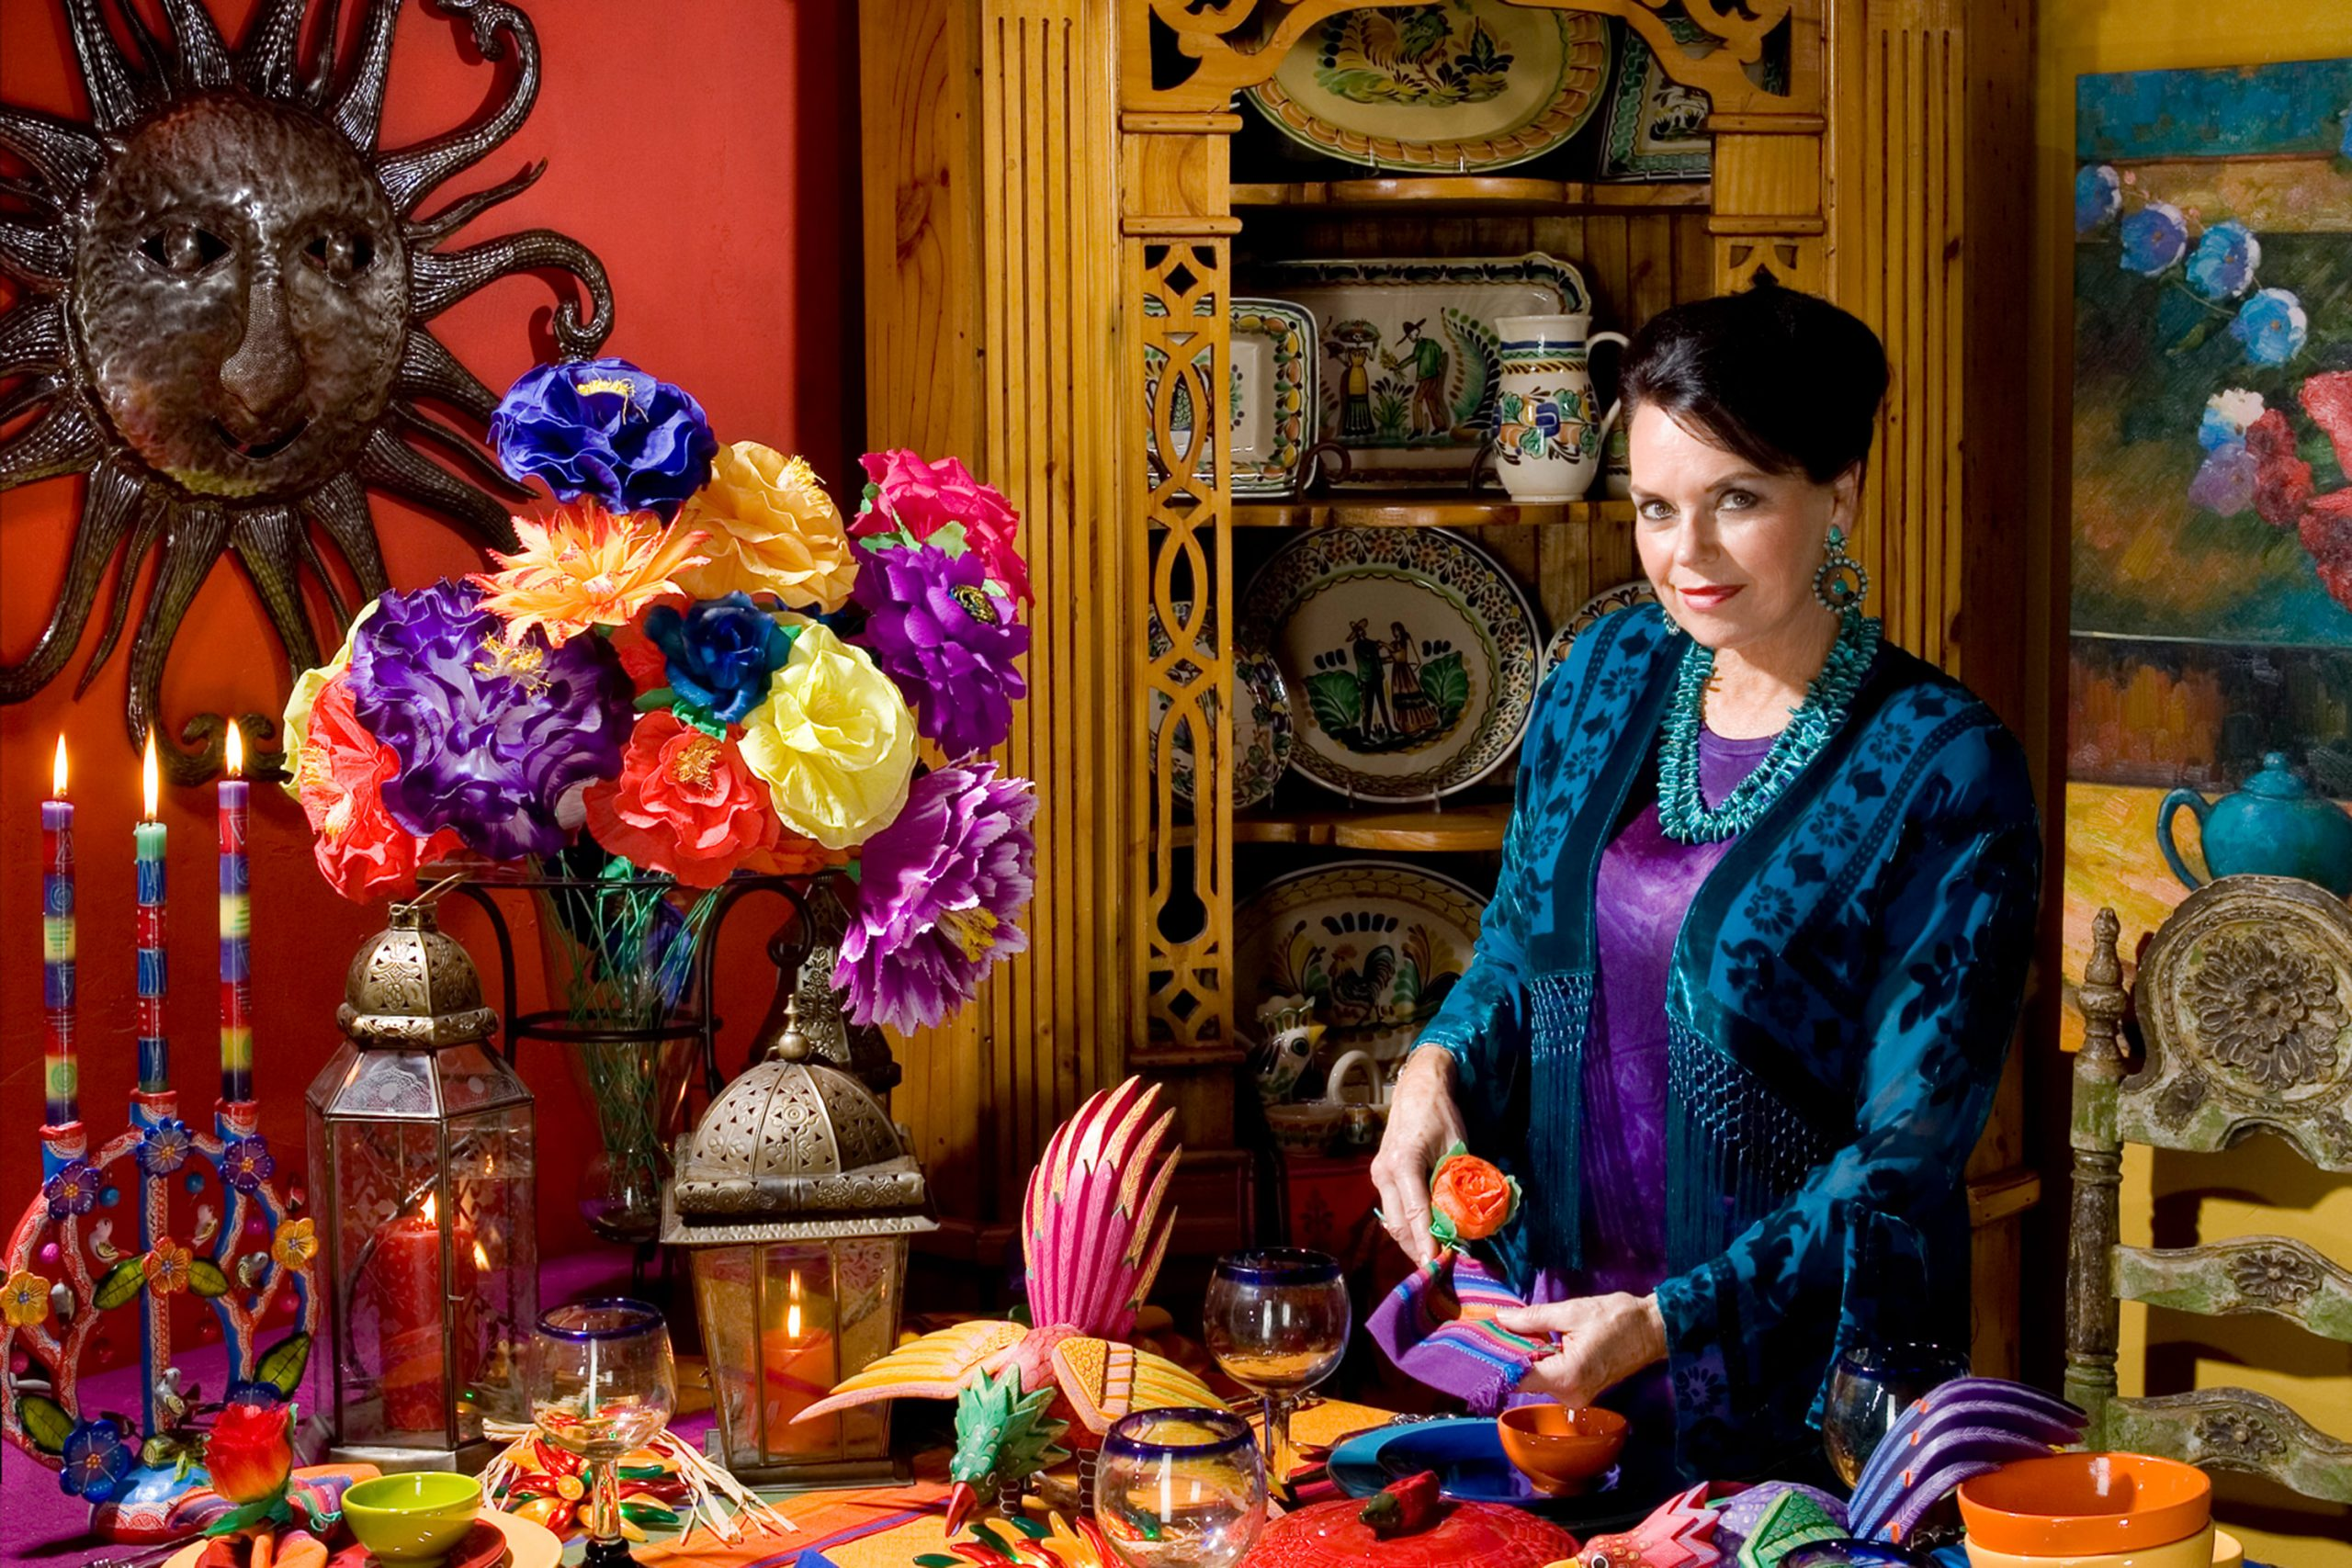 Diane Powers, owner and creator of the Bazaar del Mundo Shops in Old Town San Diego